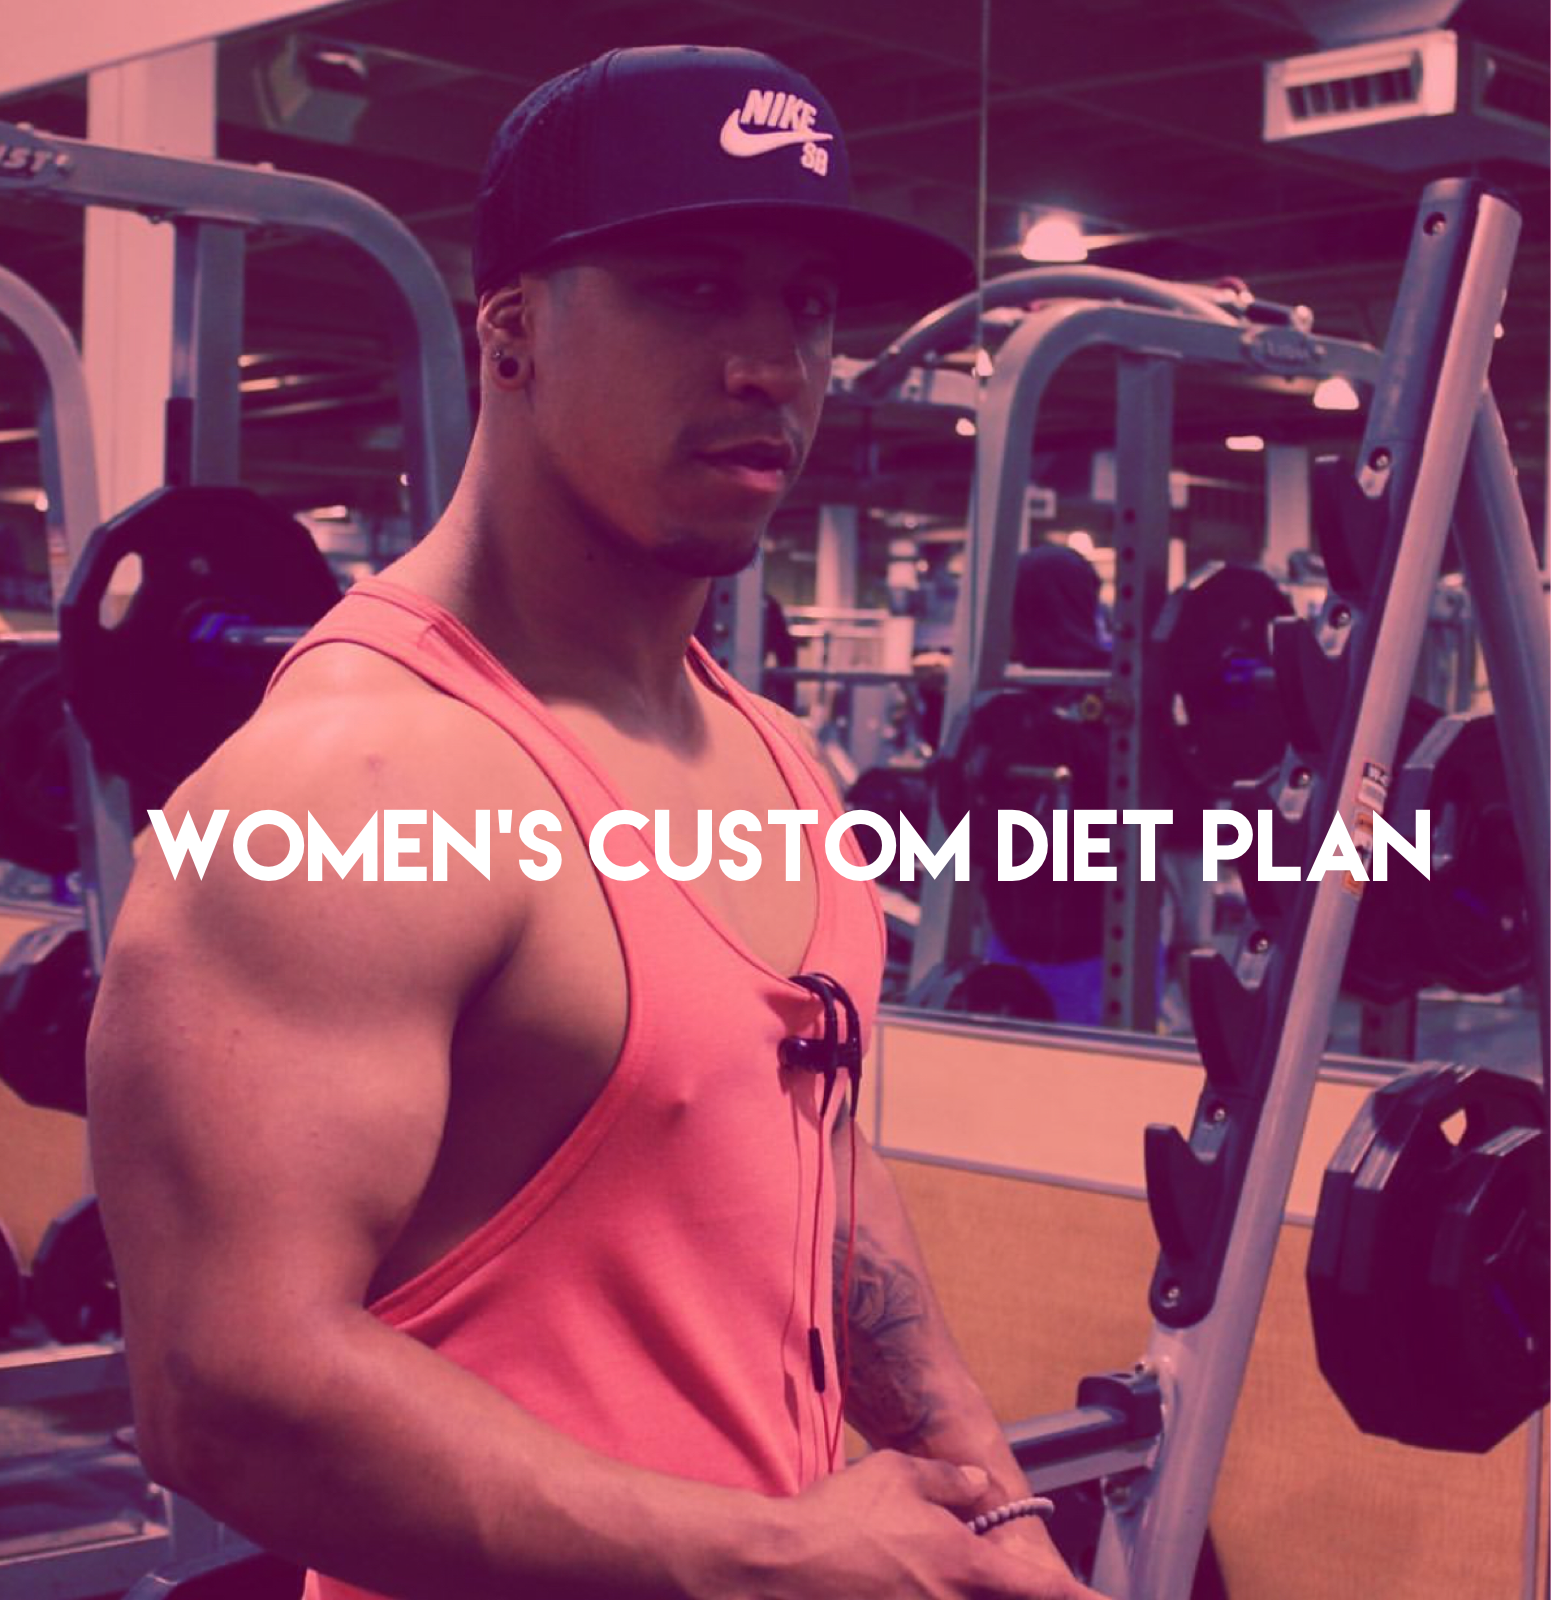 WOMEN'S FULL CUSTOMIZED DIET PLAN